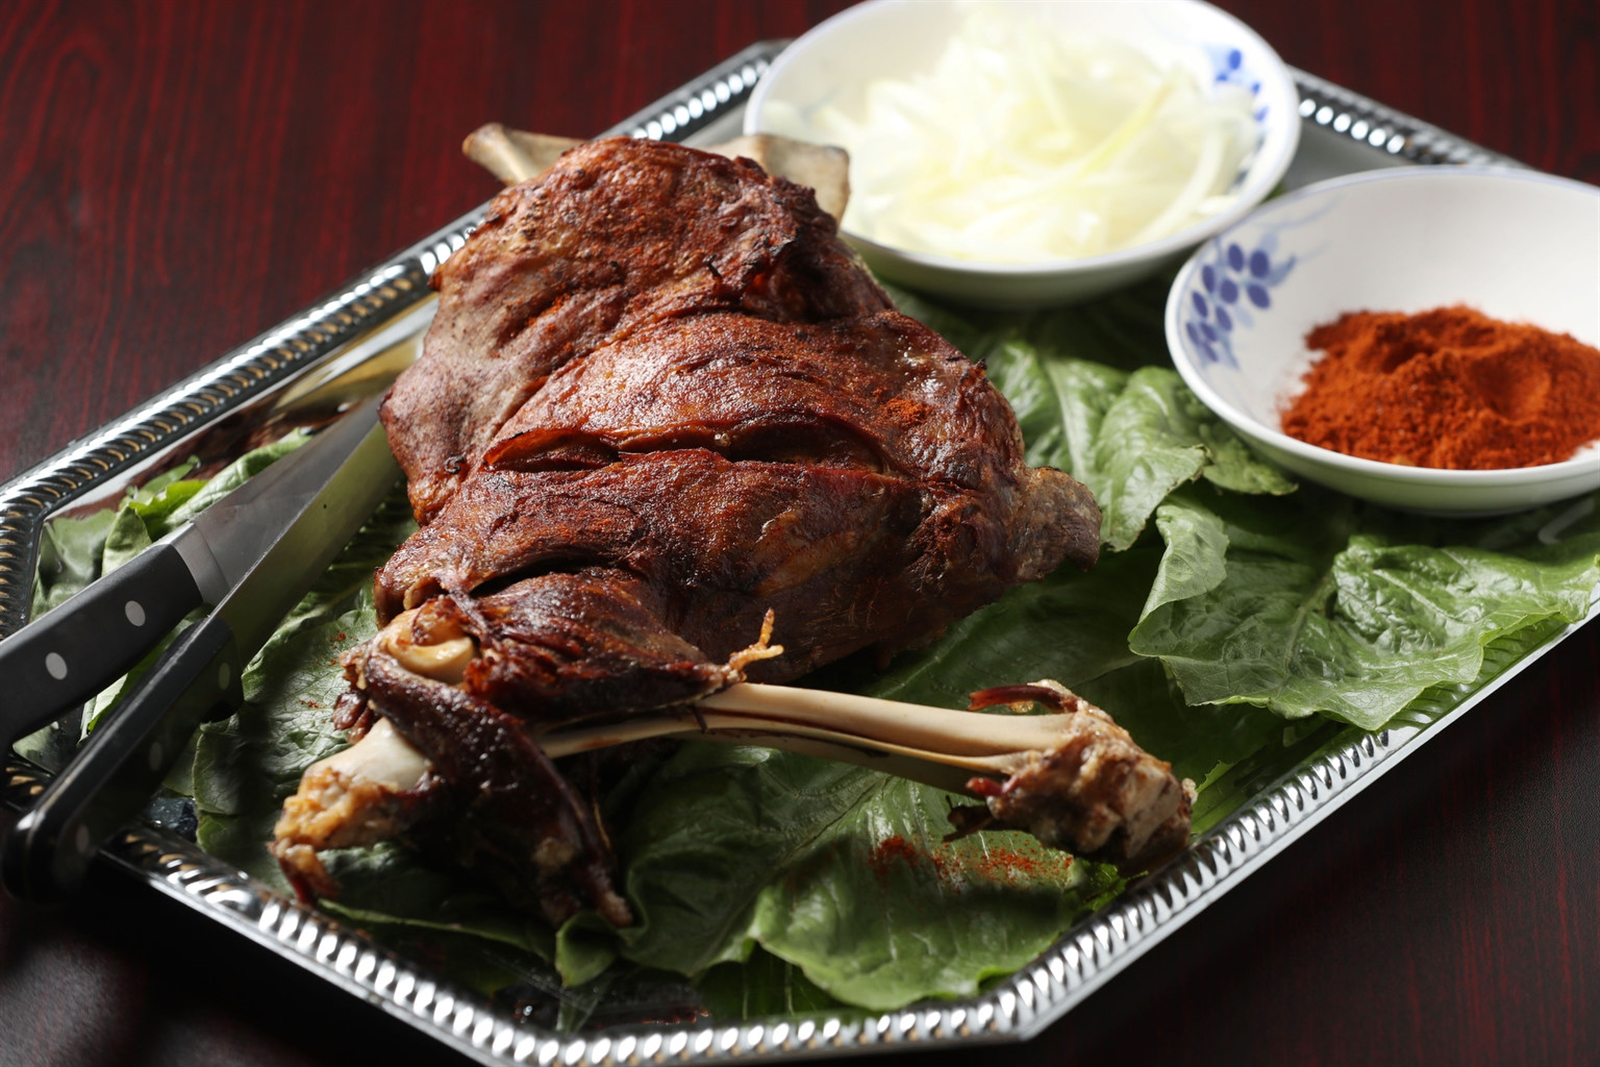 The roasted lamb leg, which is 4 to 5 pounds before cooking, is marinated in spices for an hour and cooked for another hour, which requires a two-hour pre-order.